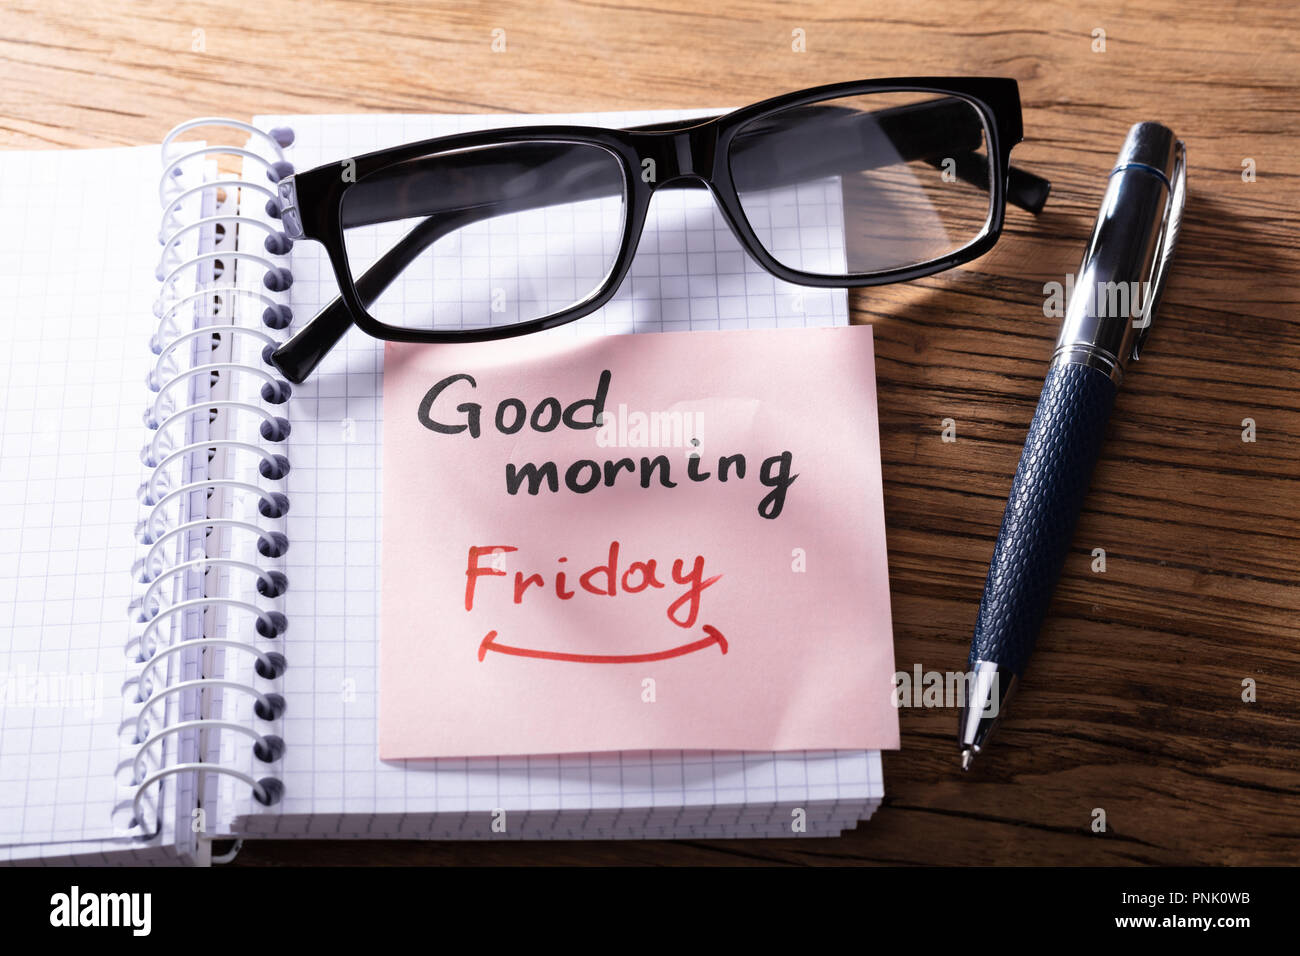 Eye Glasses And Adhesive Note With Good Morning Friday Text On